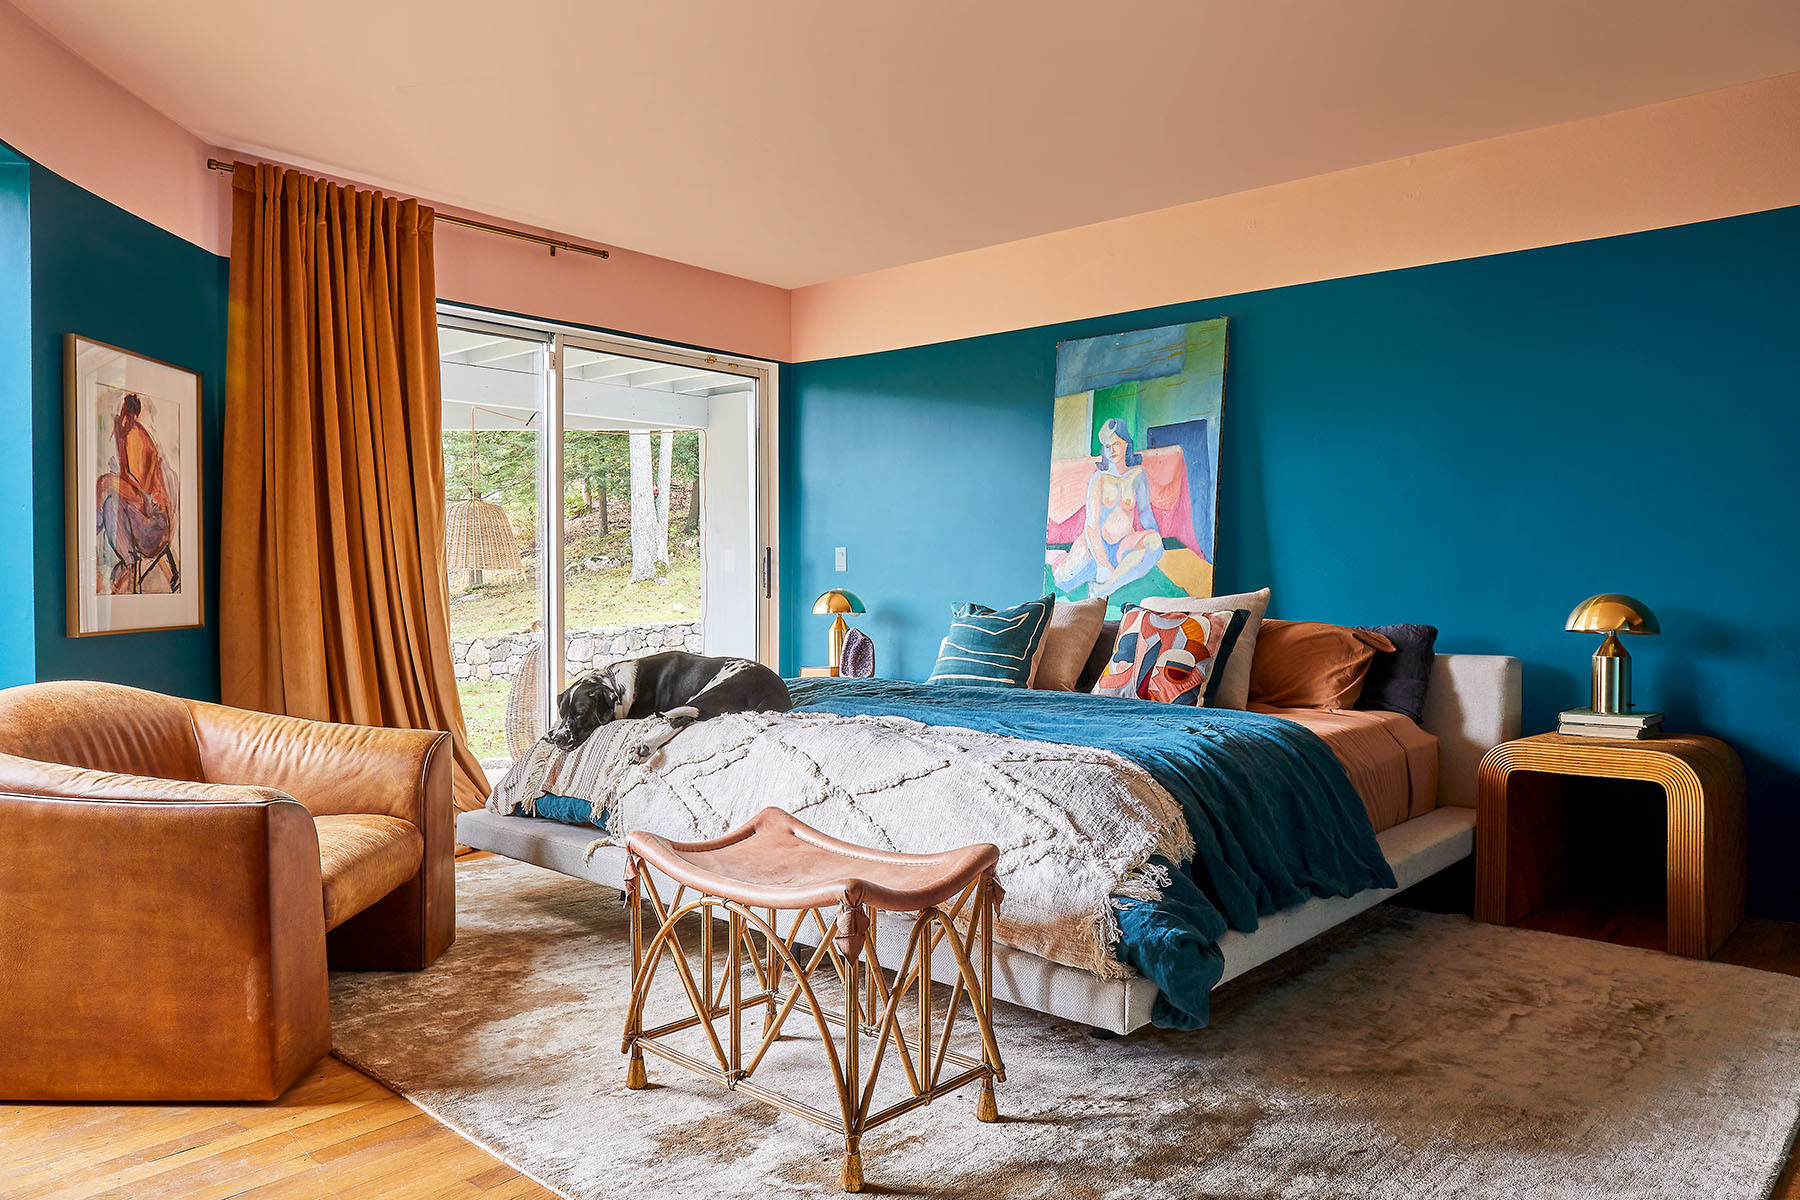 A punchy palette of teal and burnt orange complete the main bedroom space. Benjamin Moore Paint | Patina, Etsy, Assorted Pillows | Brimfield Leather Armchair | DeSede Vintage Armchair | Wayfair Rug | Spacio Terrano Bench Seat | Overstock Drapes | AllModern Table Lamps.